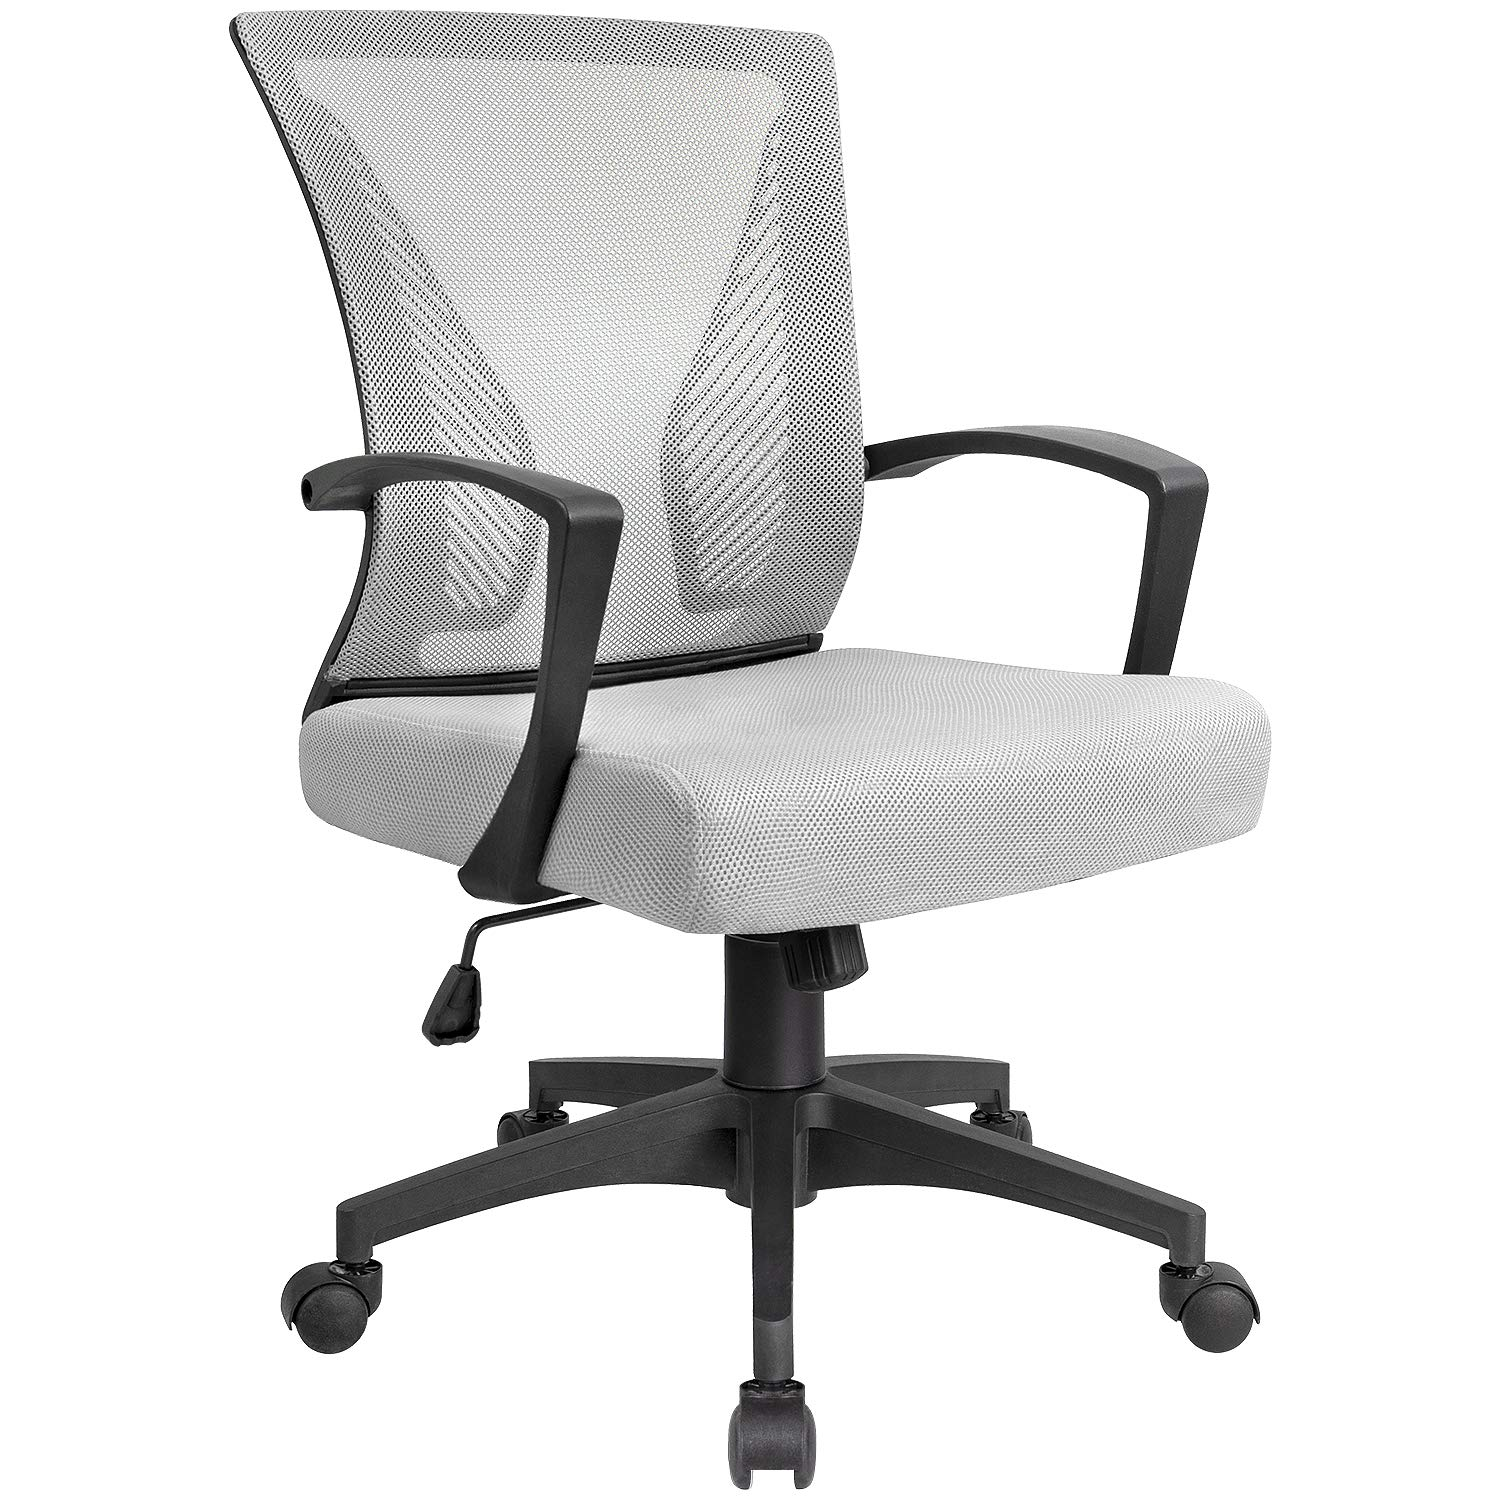 KaiMeng Mid Back Office Chair Ergonomic Computer Chair Desk Chair with Lumbar Support Gray